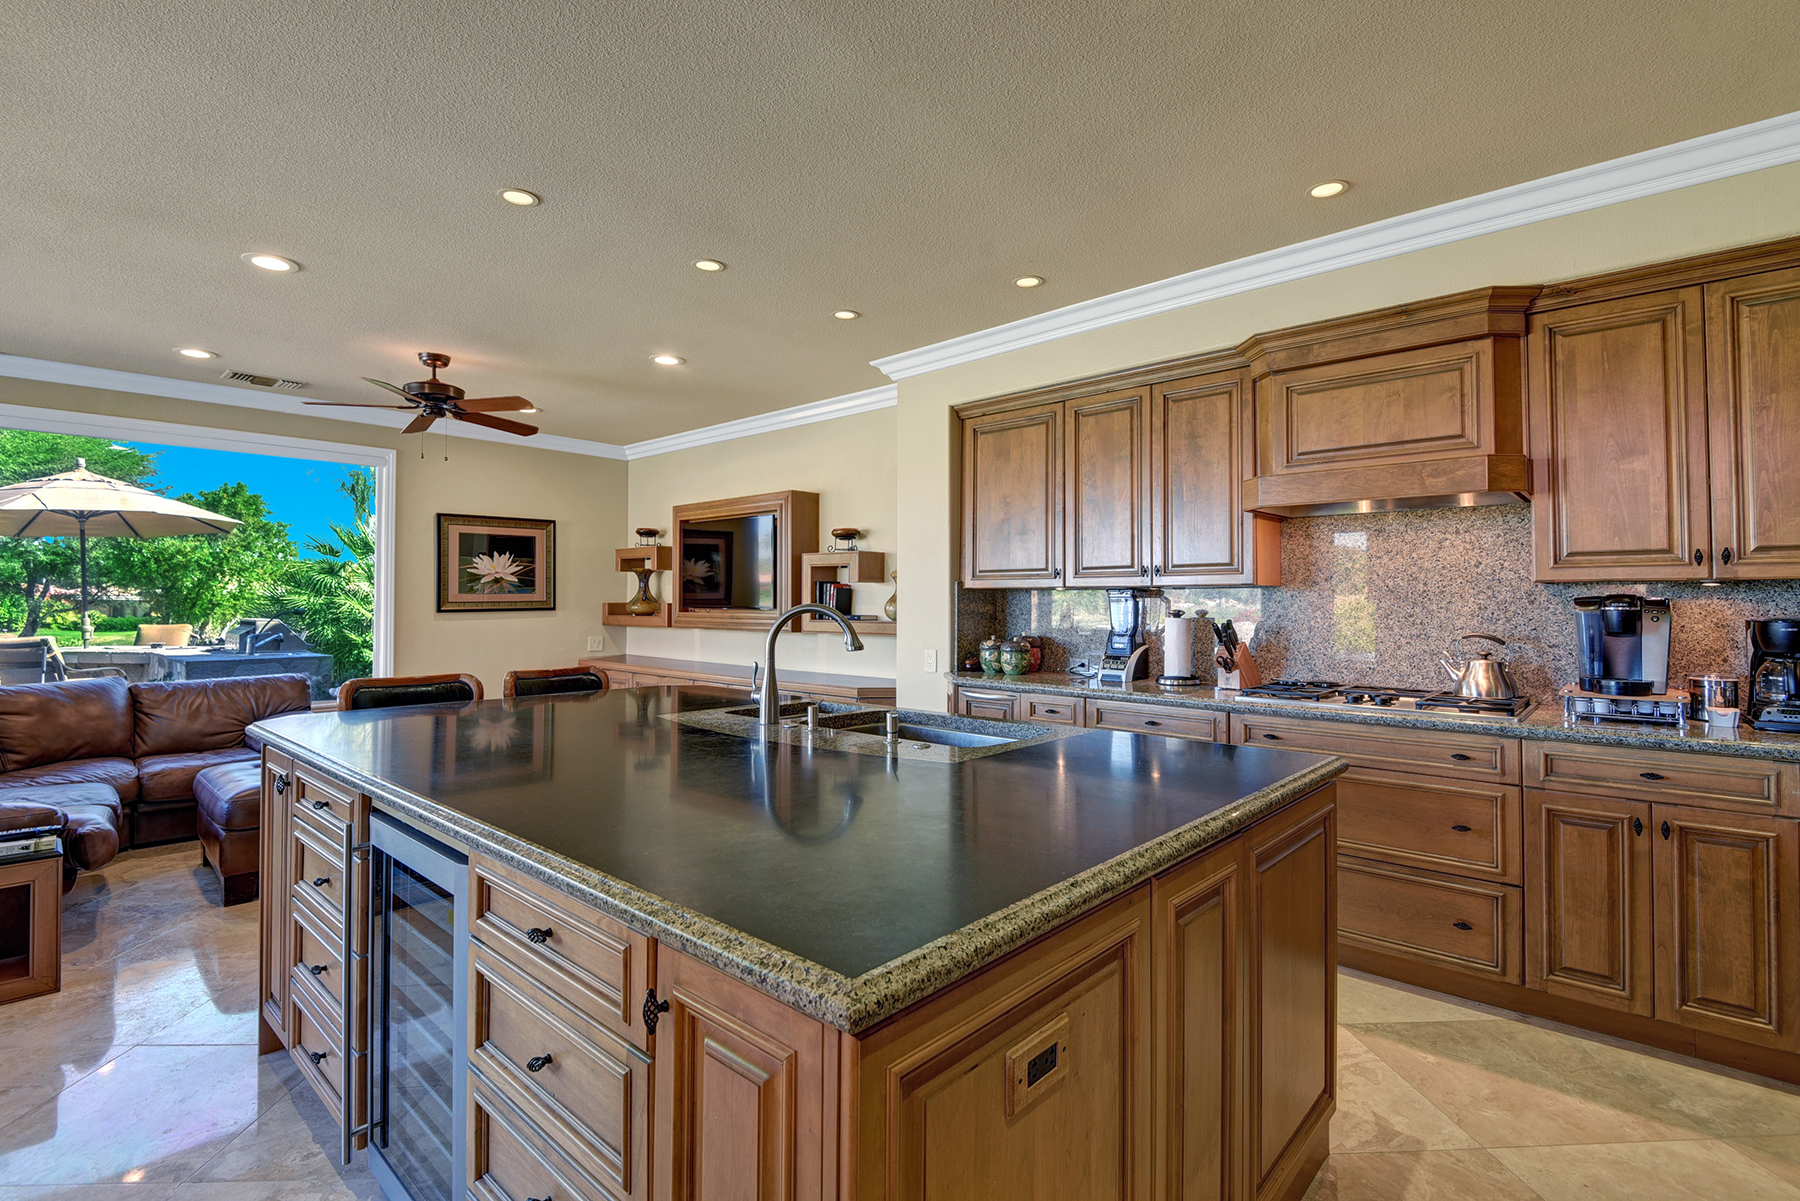 FBA0DCA1-0144-3AD7-4FDDFE9B447E7D04-KITCHEN OVER ISLAND RS.jpg